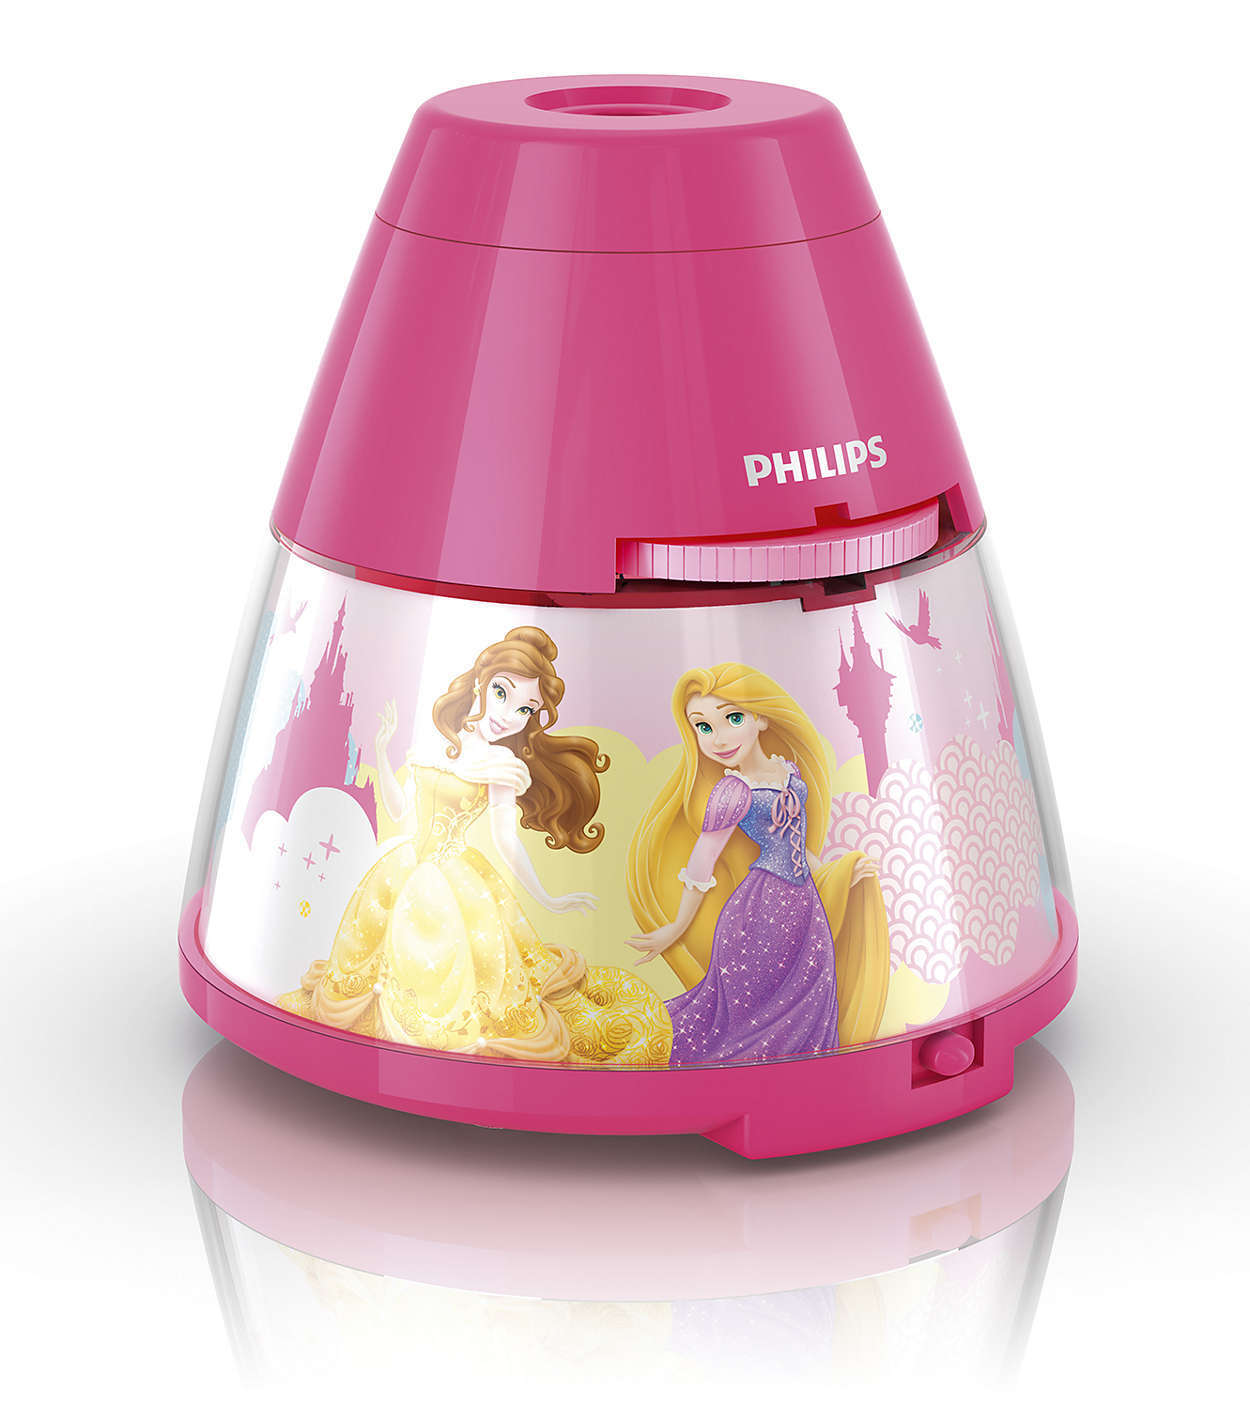 Philips Disney Princess 2-in-1 Portable LED Night Light and